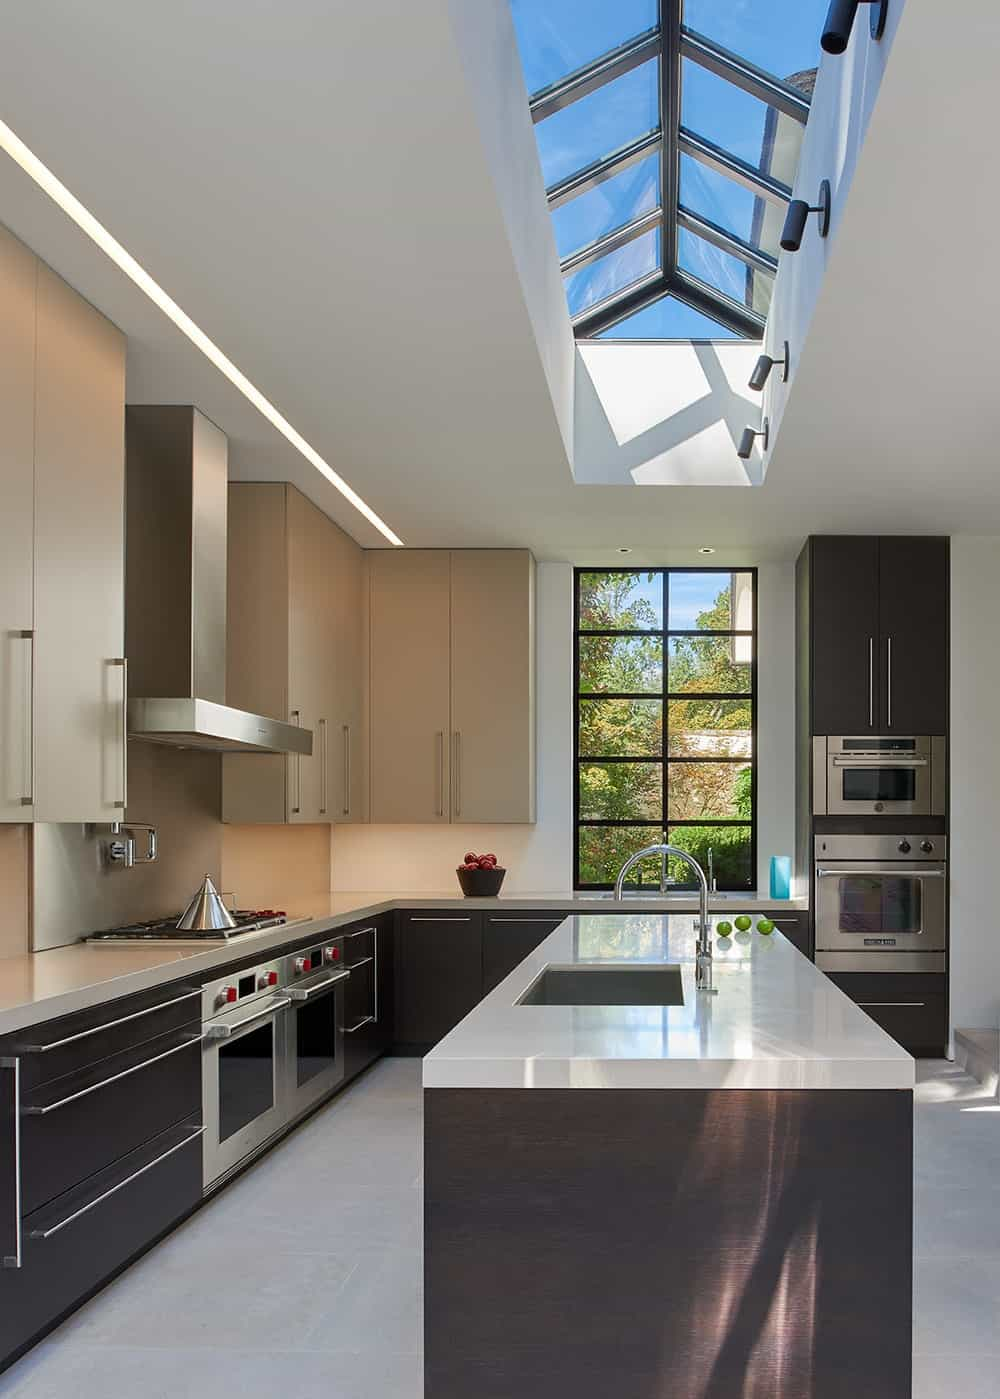 The kitchen is illuminated by the large cathedral skylight above the kitchen island that brings in an abundance of natural lighting.